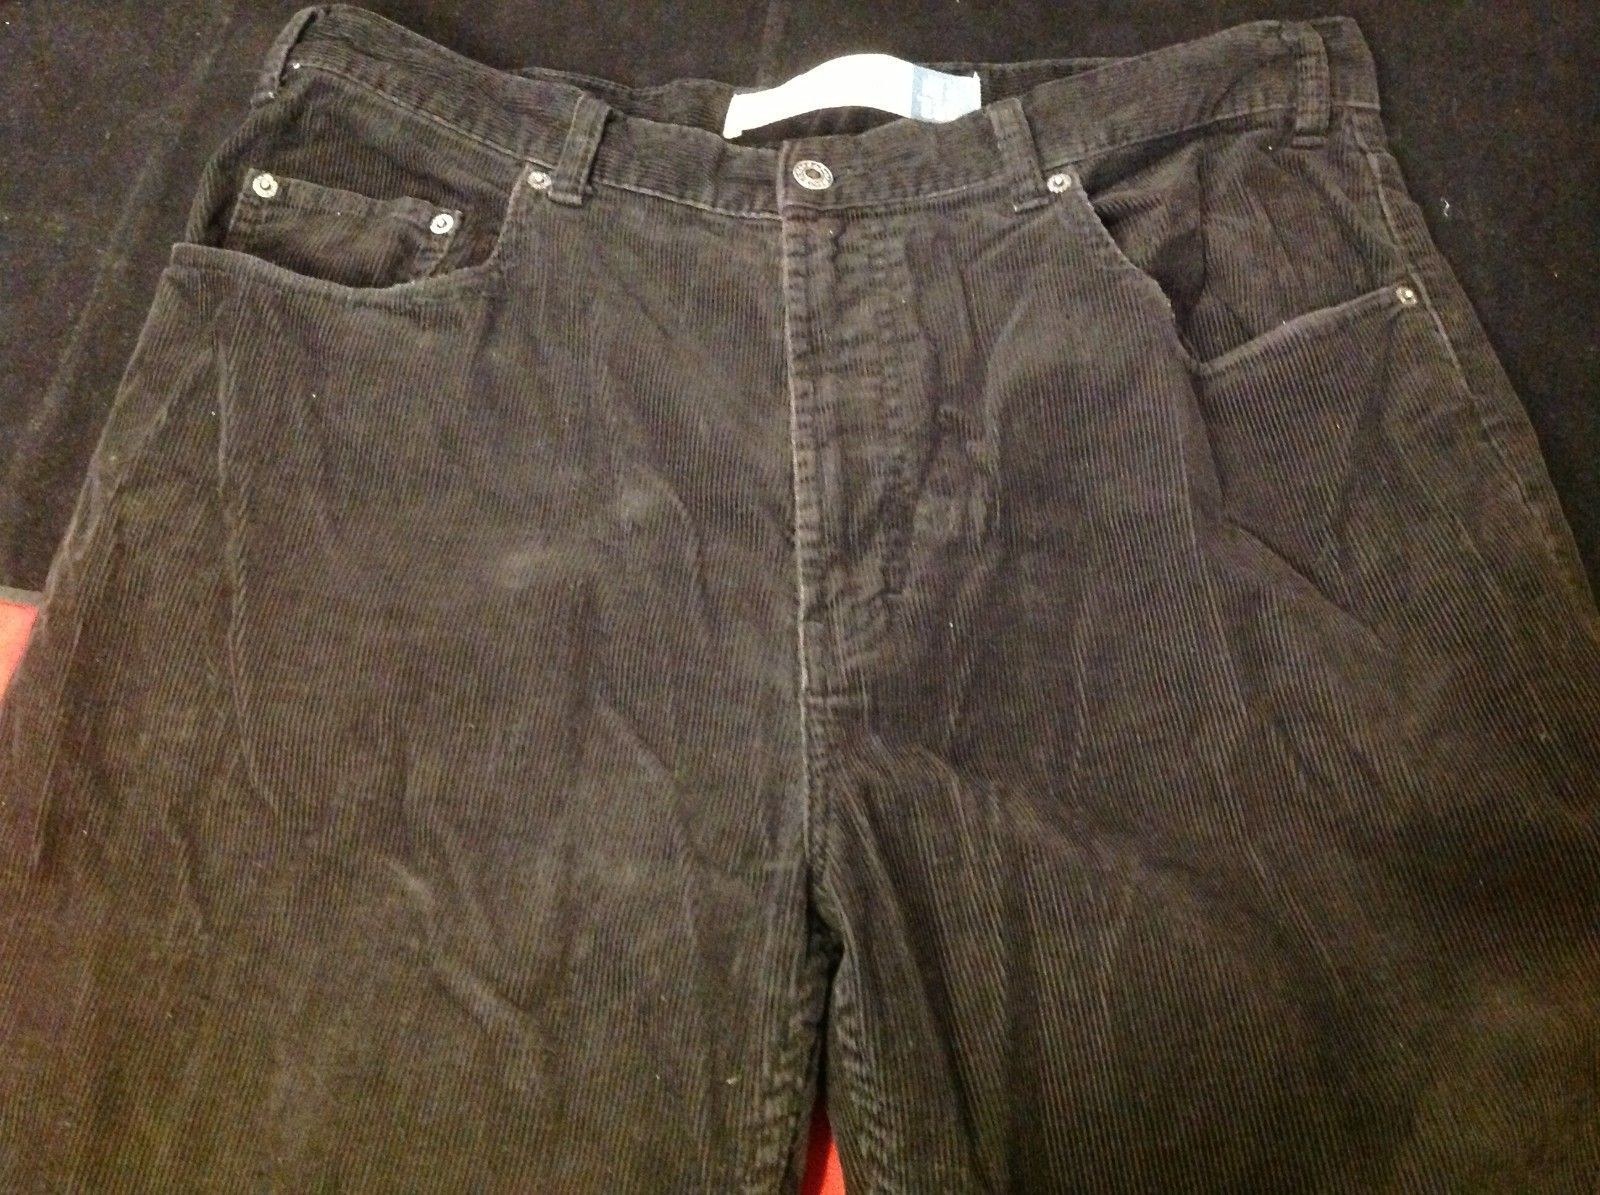 Gap blue jeans corduroy pants for man size 38w 34l easy fit